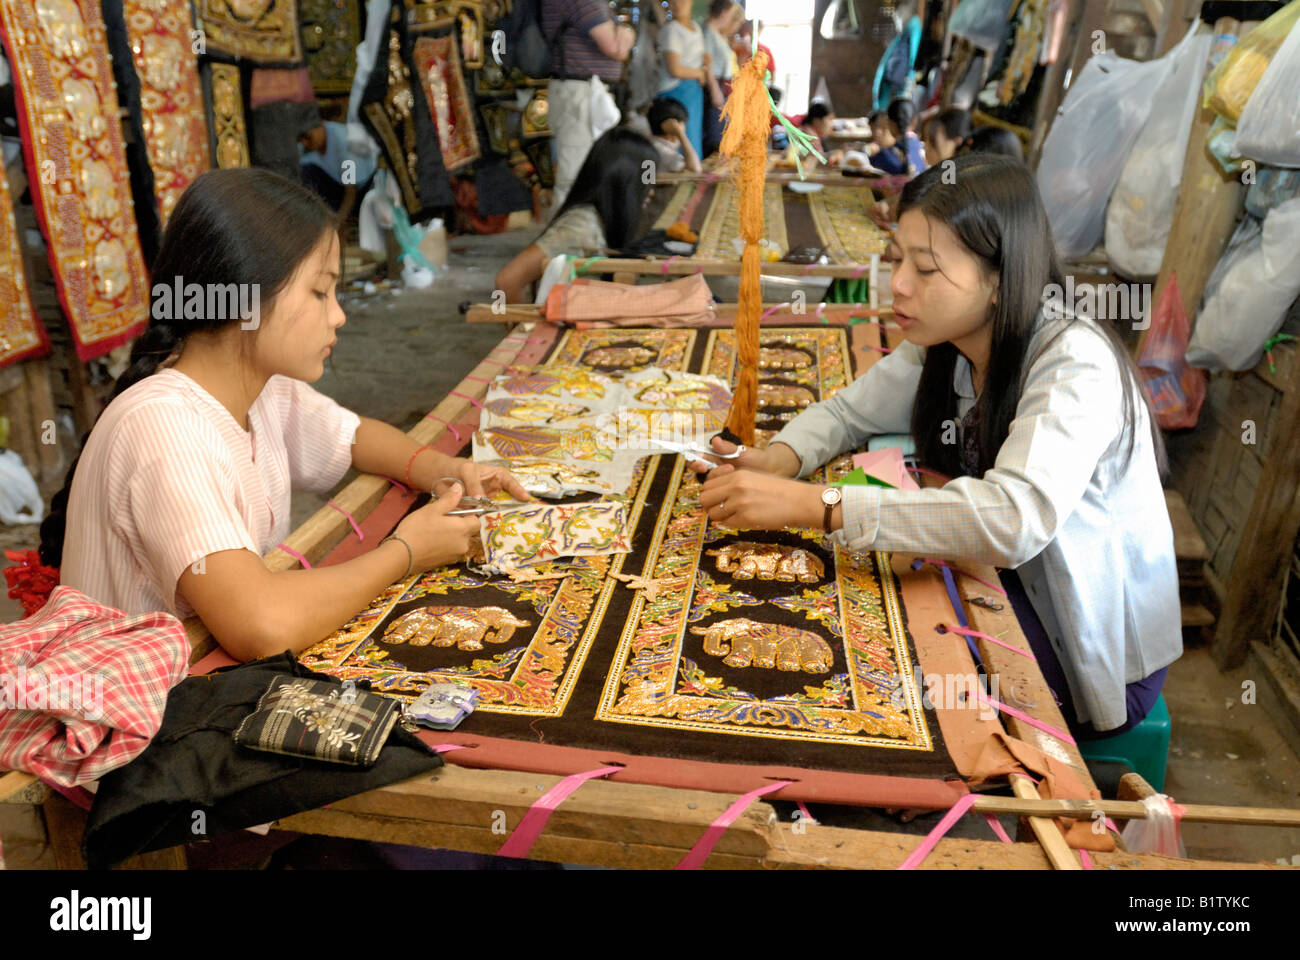 women stitching tapestries in a workshop of tapestry marionettes and other souvenirs, MANDALAY AMARAPURA, MYANMAR - Stock Image